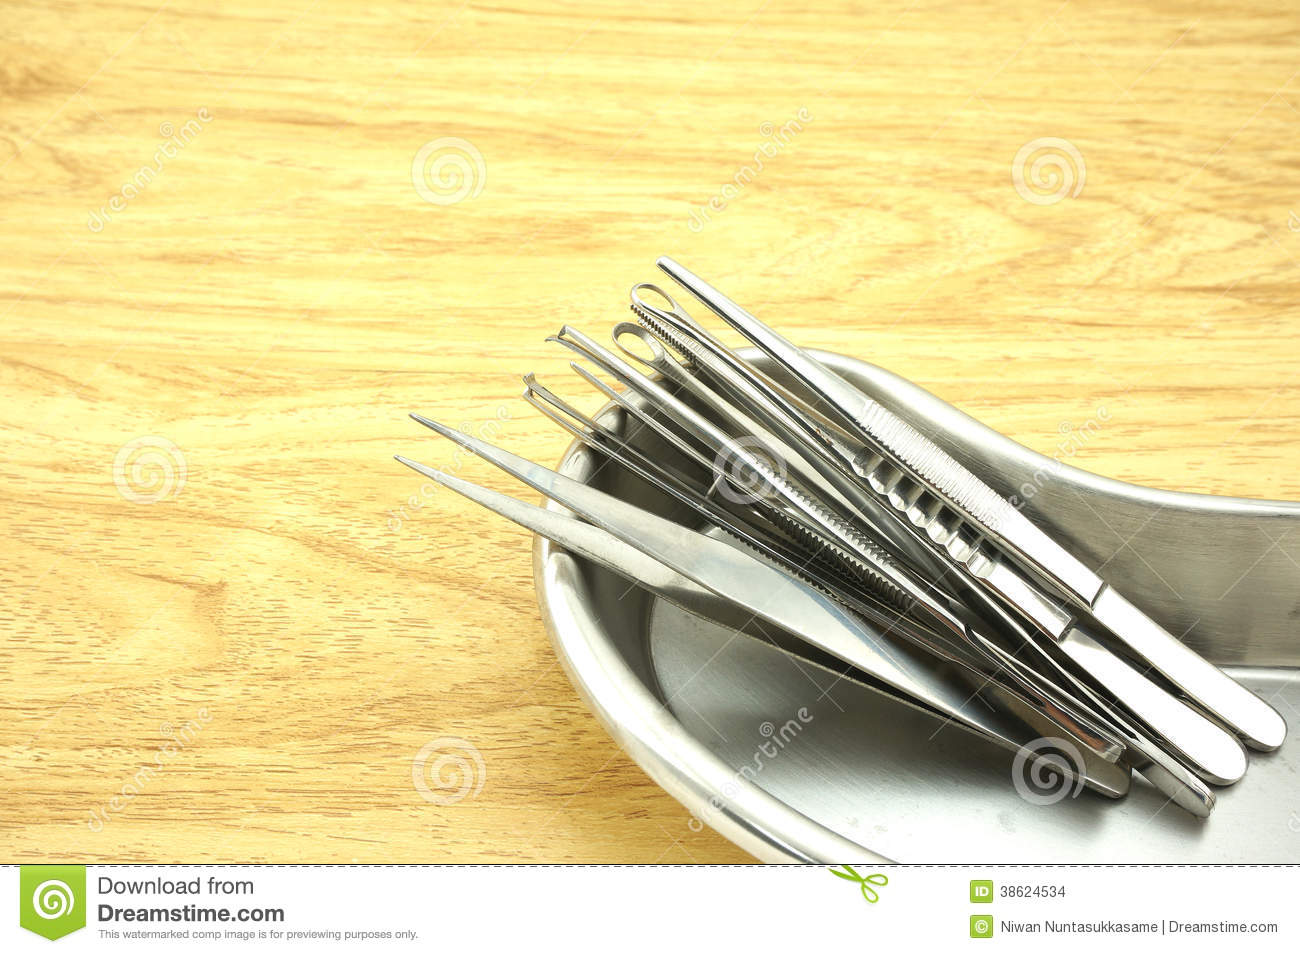 Many Types Of Forceps In Kidney Tray Stock Photo - Image of ... for Forceps Types  166kxo